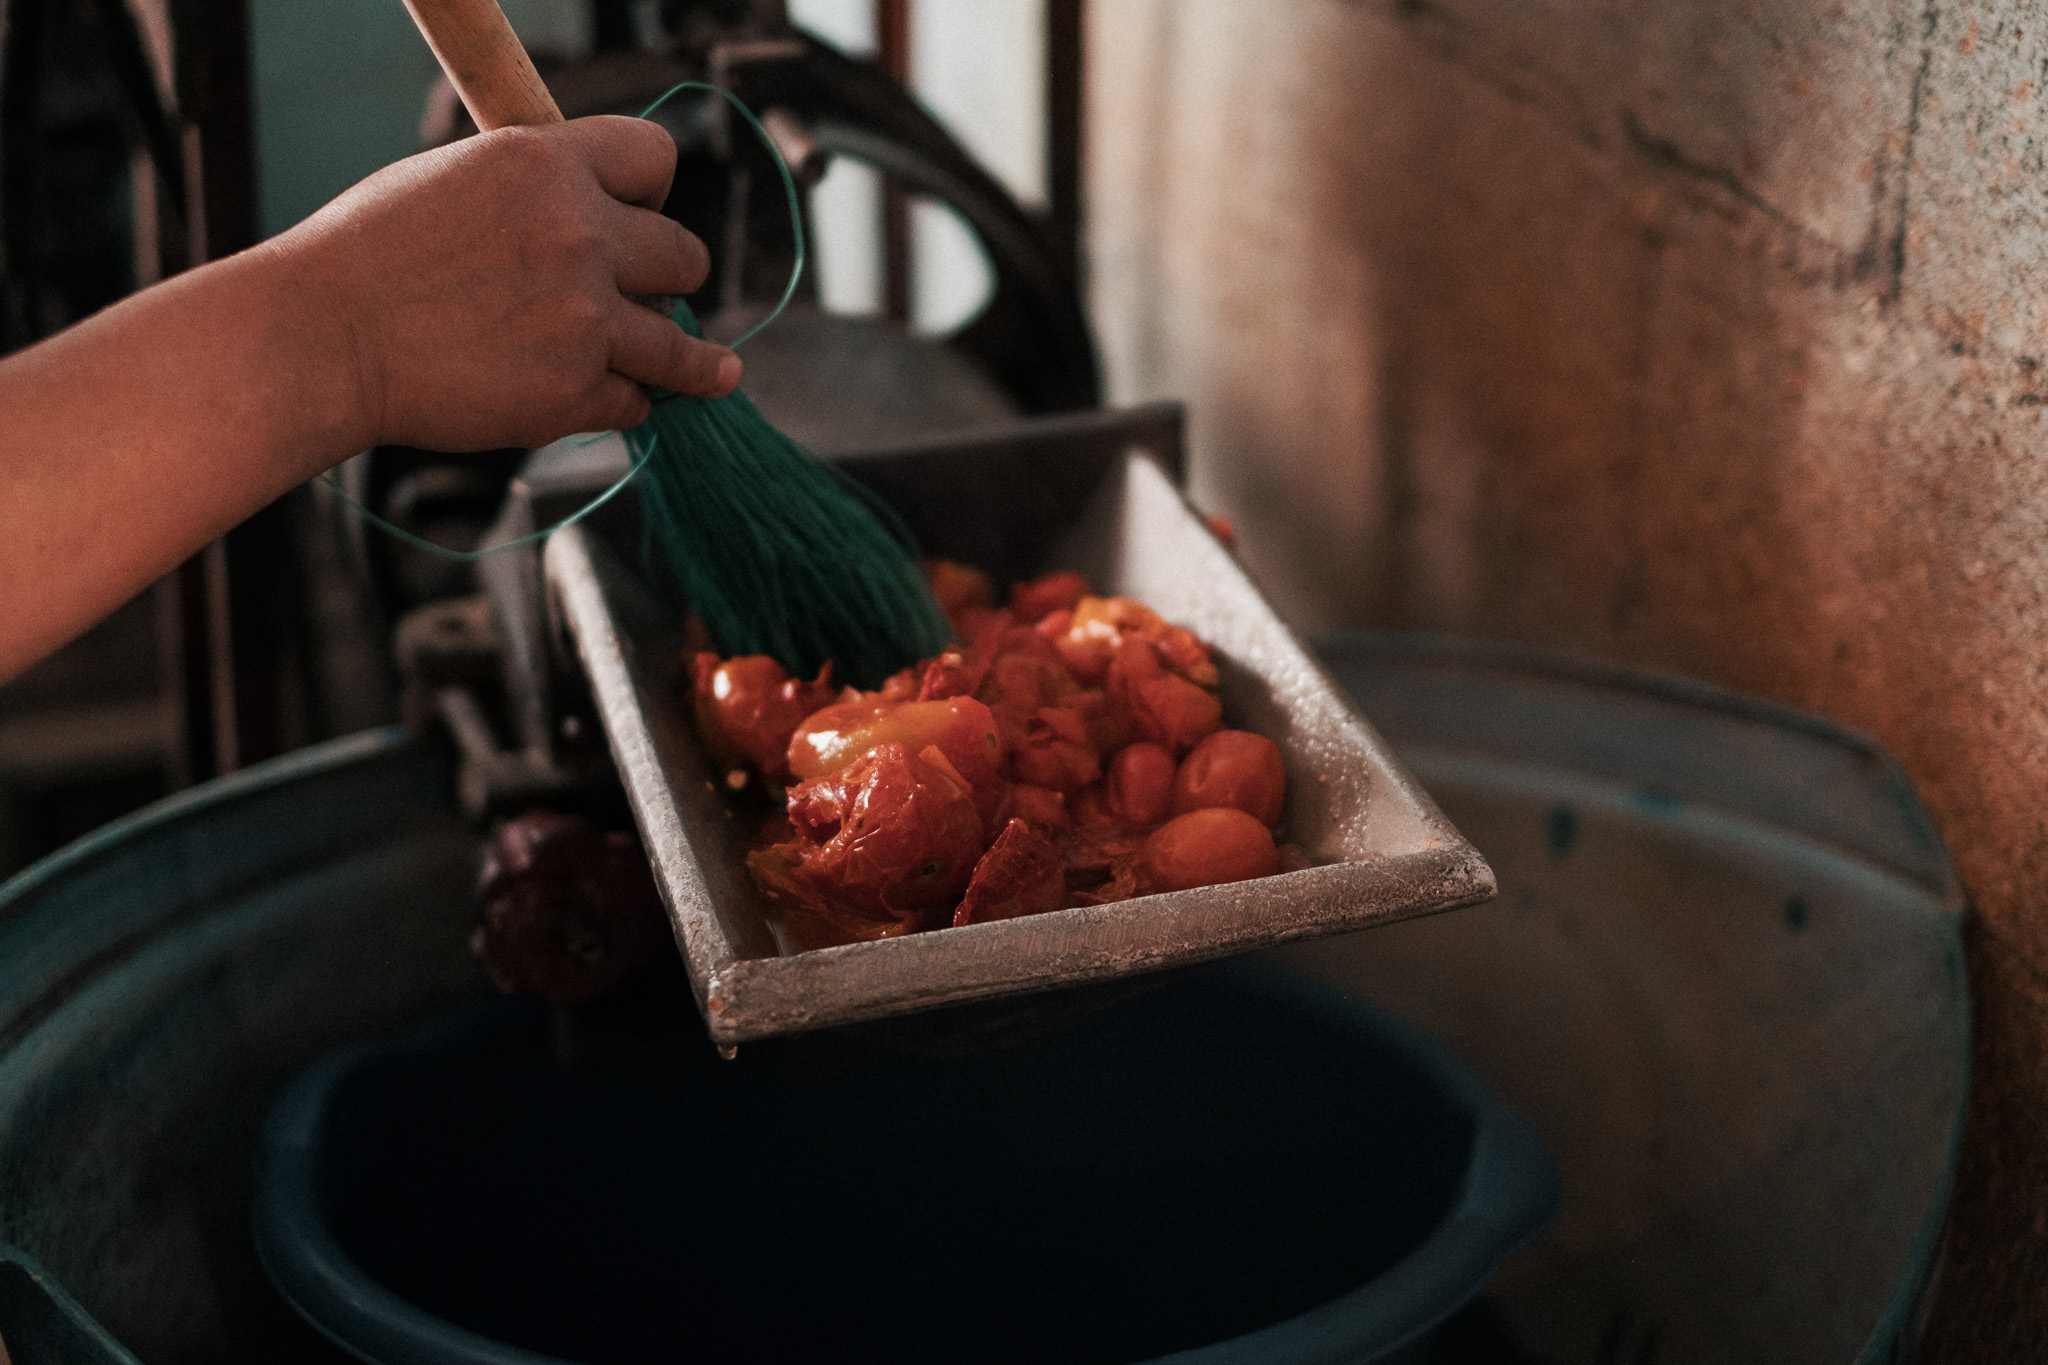 Pureeing the tomatoes in the mill.